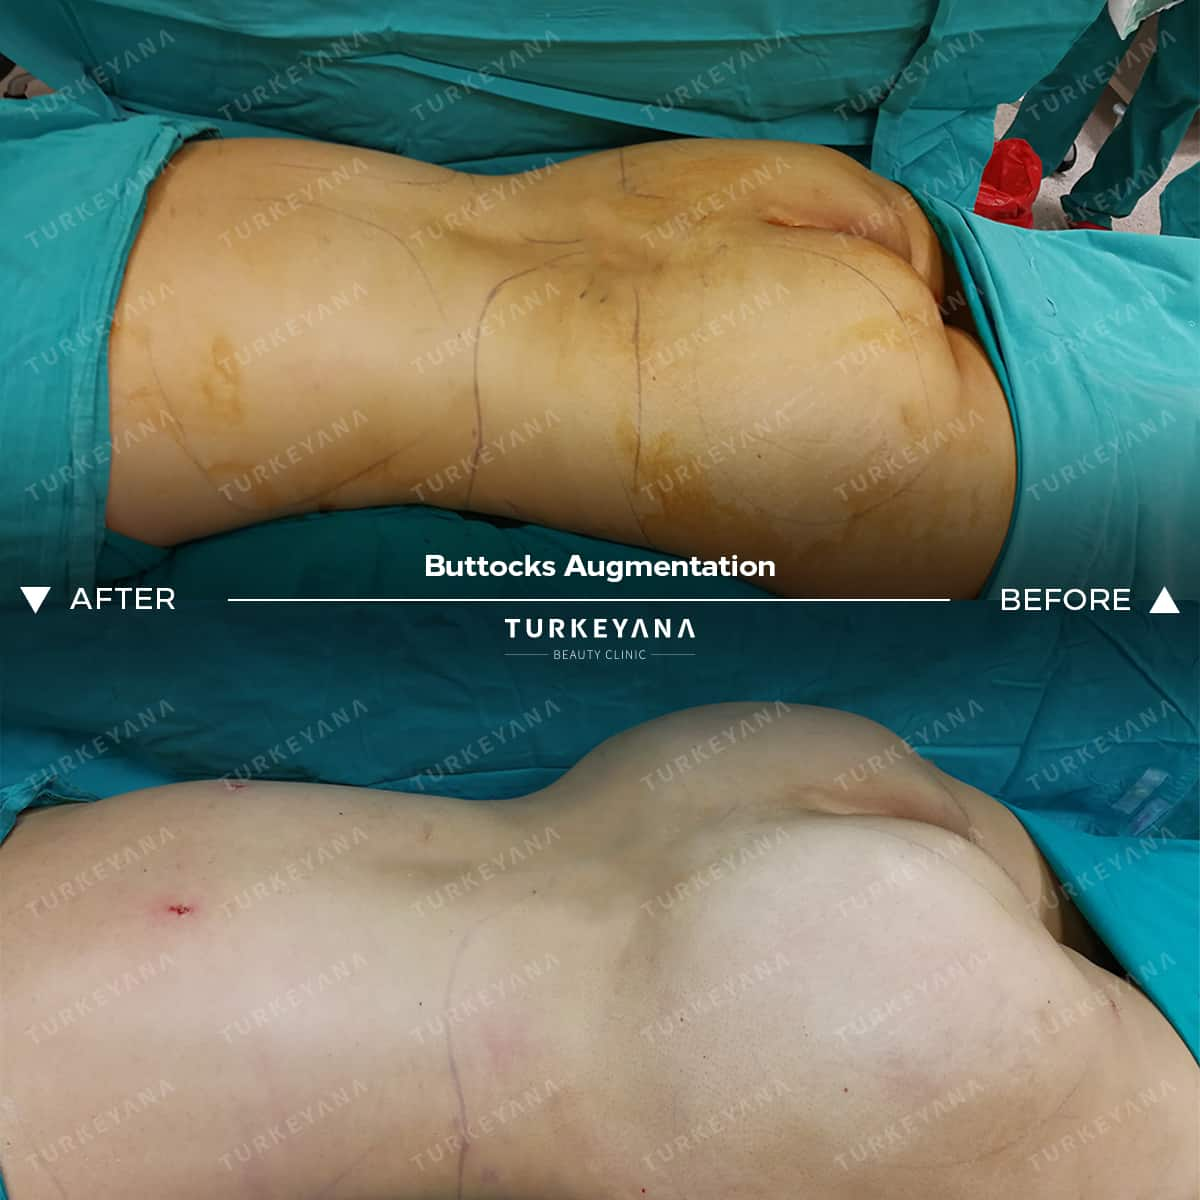 Buttock Augmentation in Turkey, Buttock Augmentation in Turkey